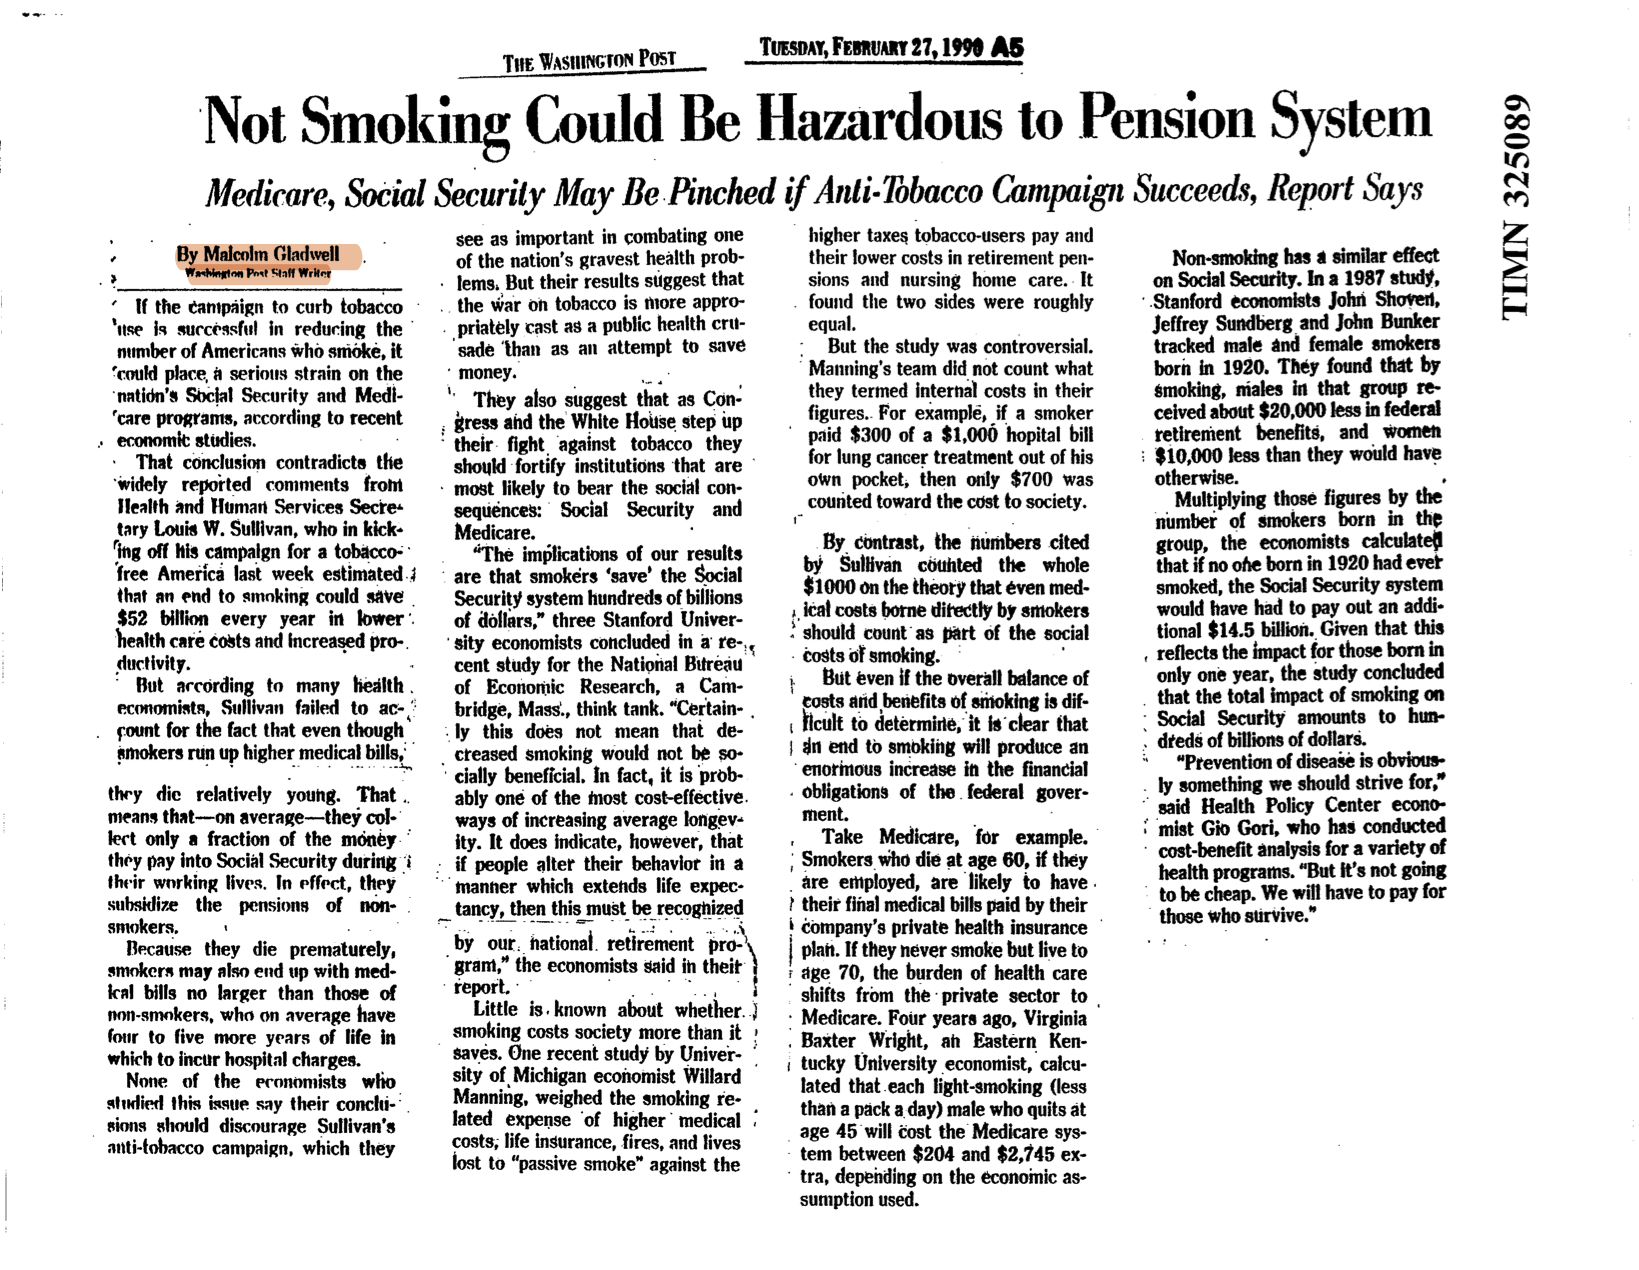 persuasive speech on smoking in public speeches on smoking cover  speeches on smoking in a gladwell article in the washington